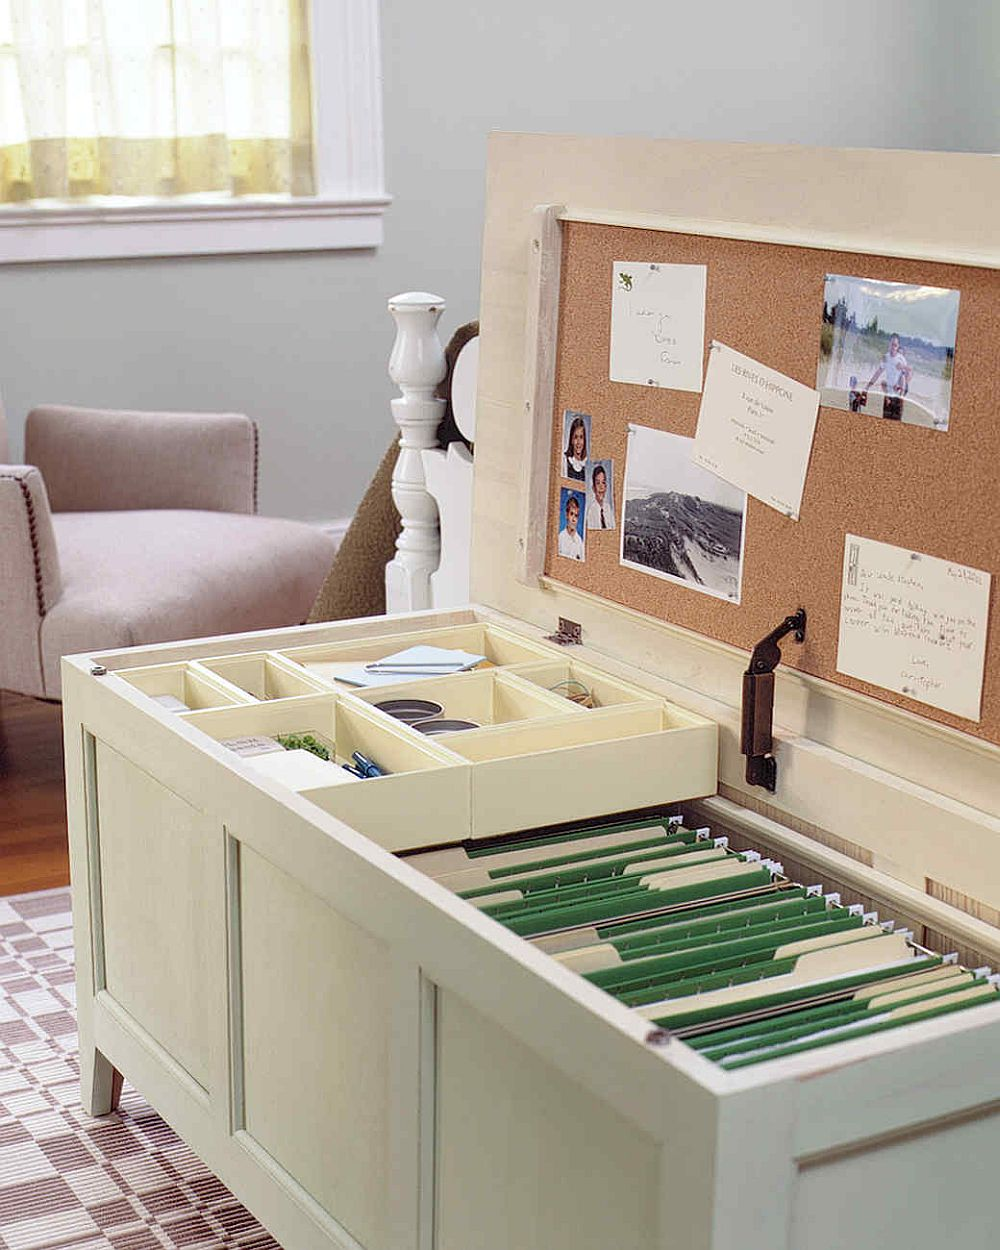 Fabulous and multi-tasking chest for an organized home office!